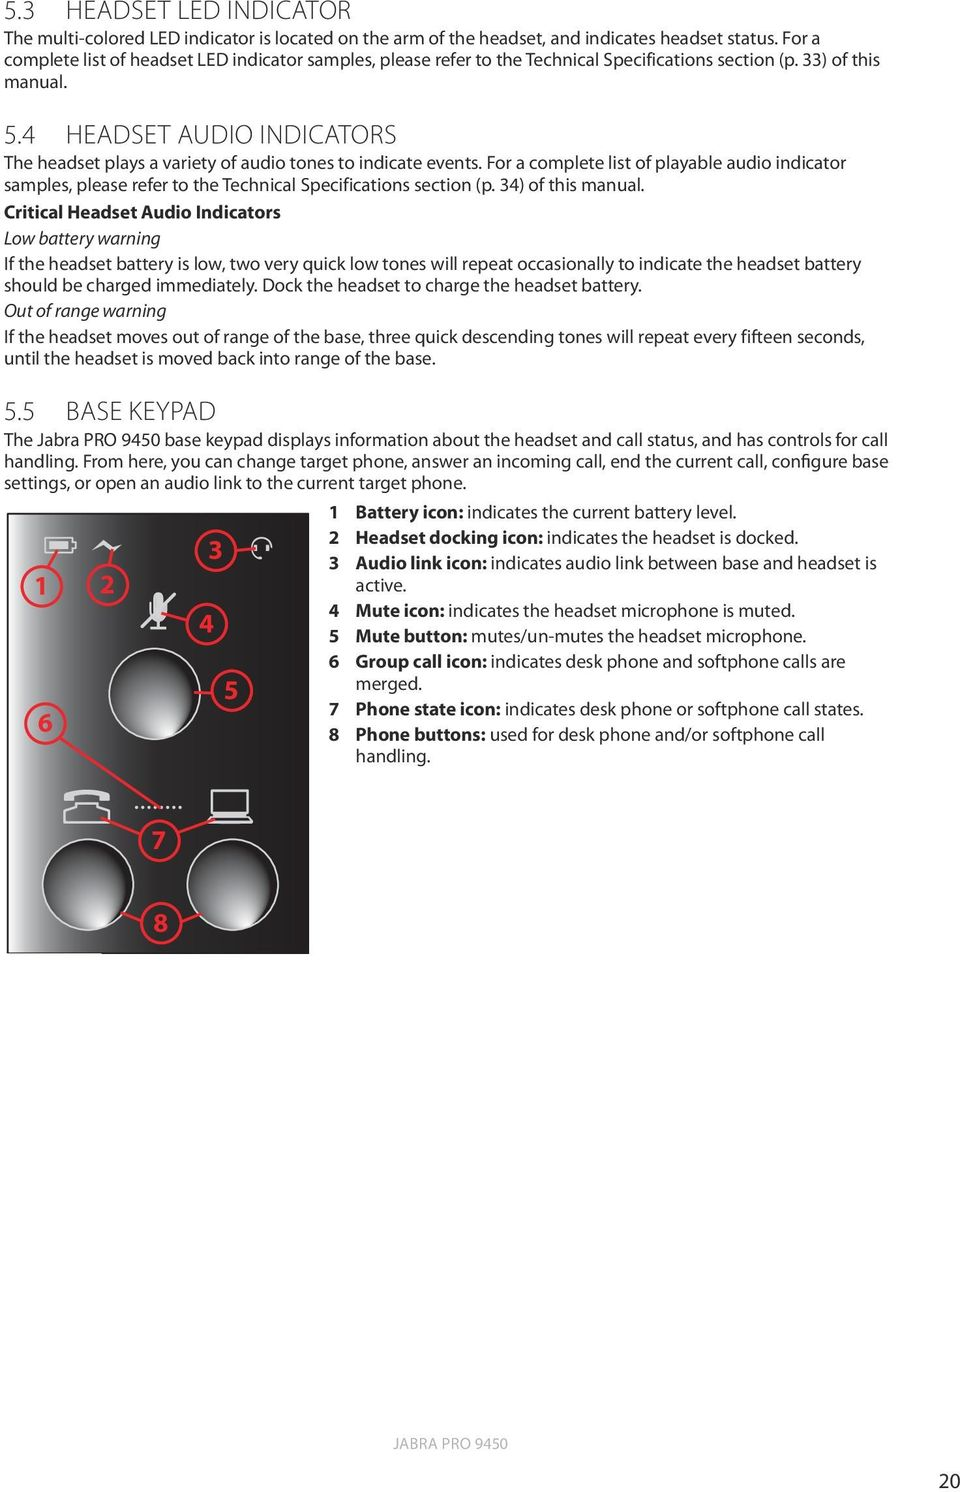 4 HEADSET AUDIO INDICATORS The headset plays a variety of audio tones to indicate events.